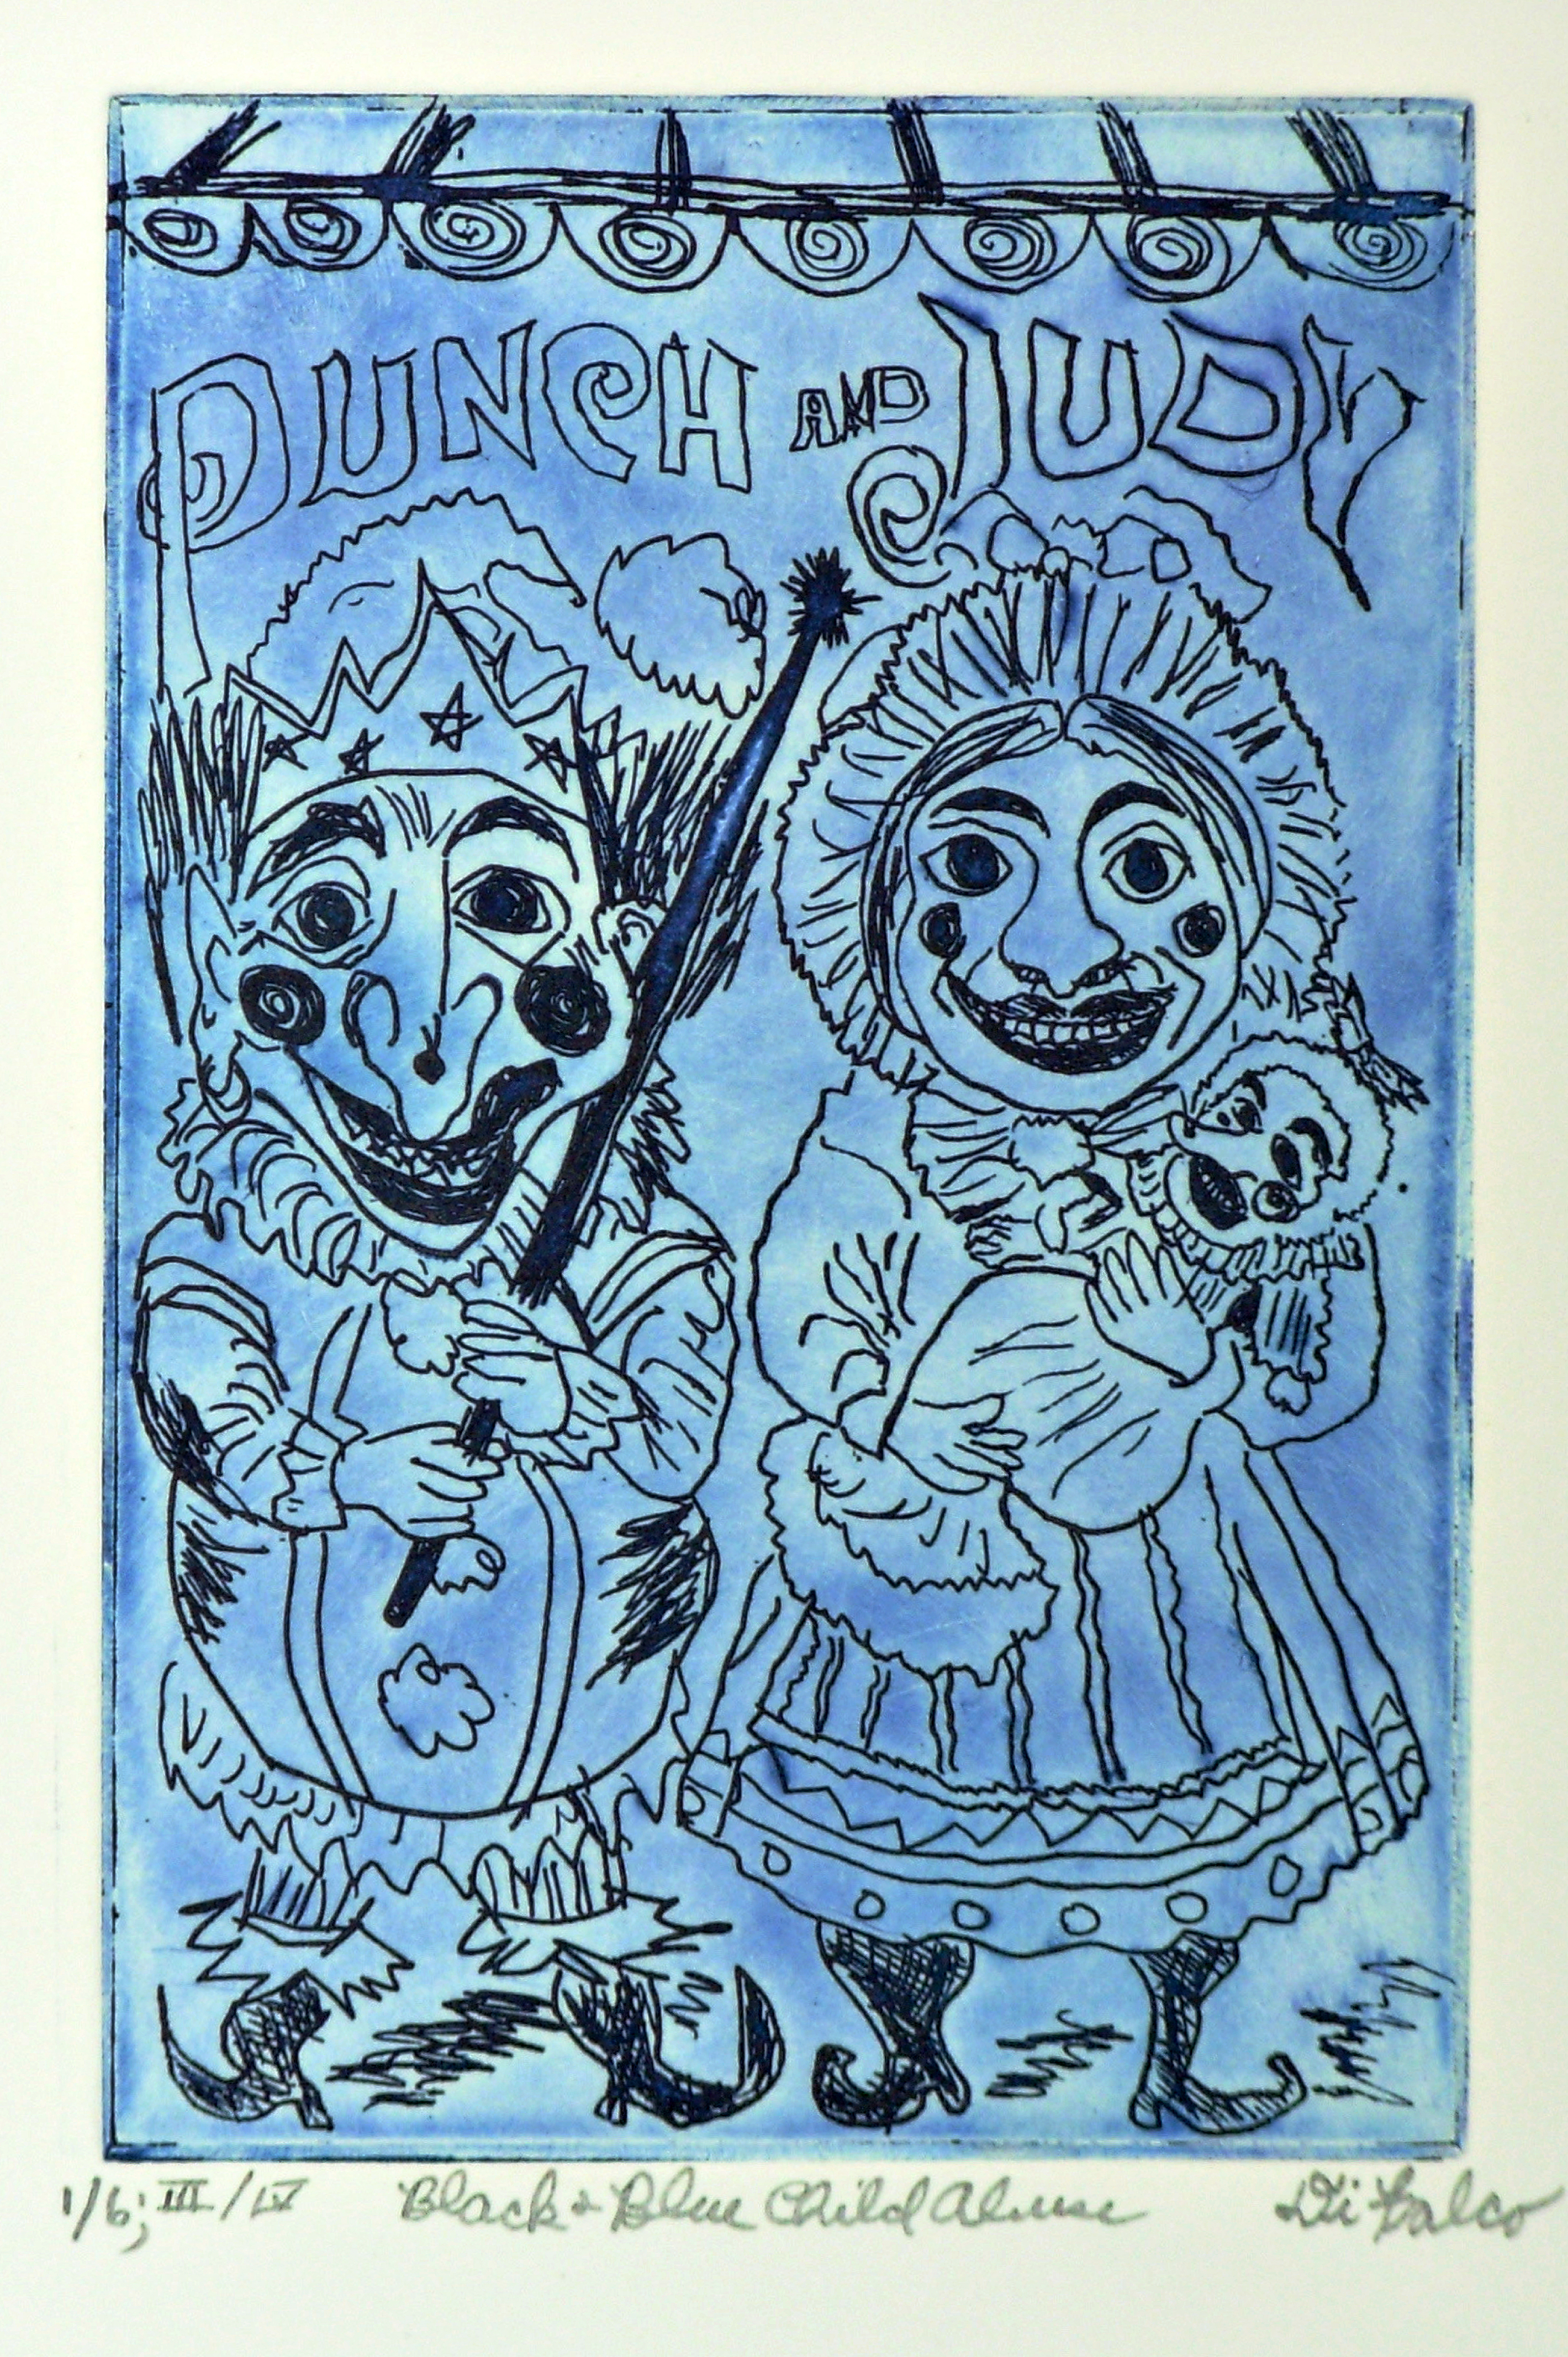 Jerry  Di Falco: 'Black and Blue Child Abuse', 2016 Intaglio, Death. Artist Description:  Black and Blue Child Abuse Punch and Judy - Limited Edition 1 of 6Printmaking Drypoint, Etching, Oil, Paper and Ink on Paper and Other. FOUR EDITIONS OF SIX PRINTS EXECUTED BY THE ARTIST.   IIIIVThis etching on zinc- plate plate is four inches wide by six highs high ...